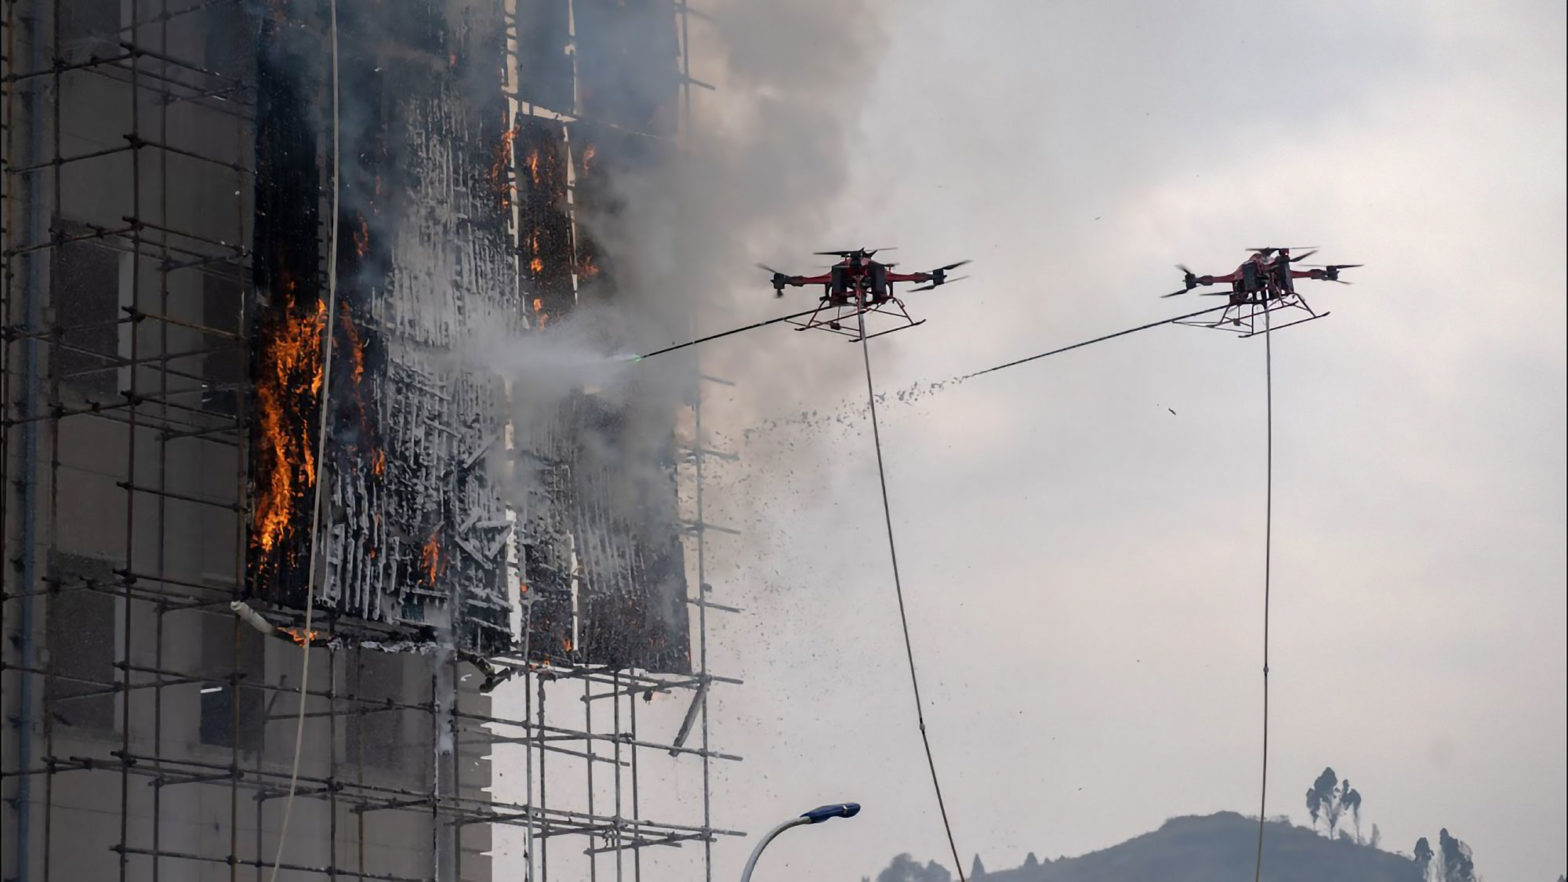 First Live Fire Fighting Drill With Fire-fighting Drones